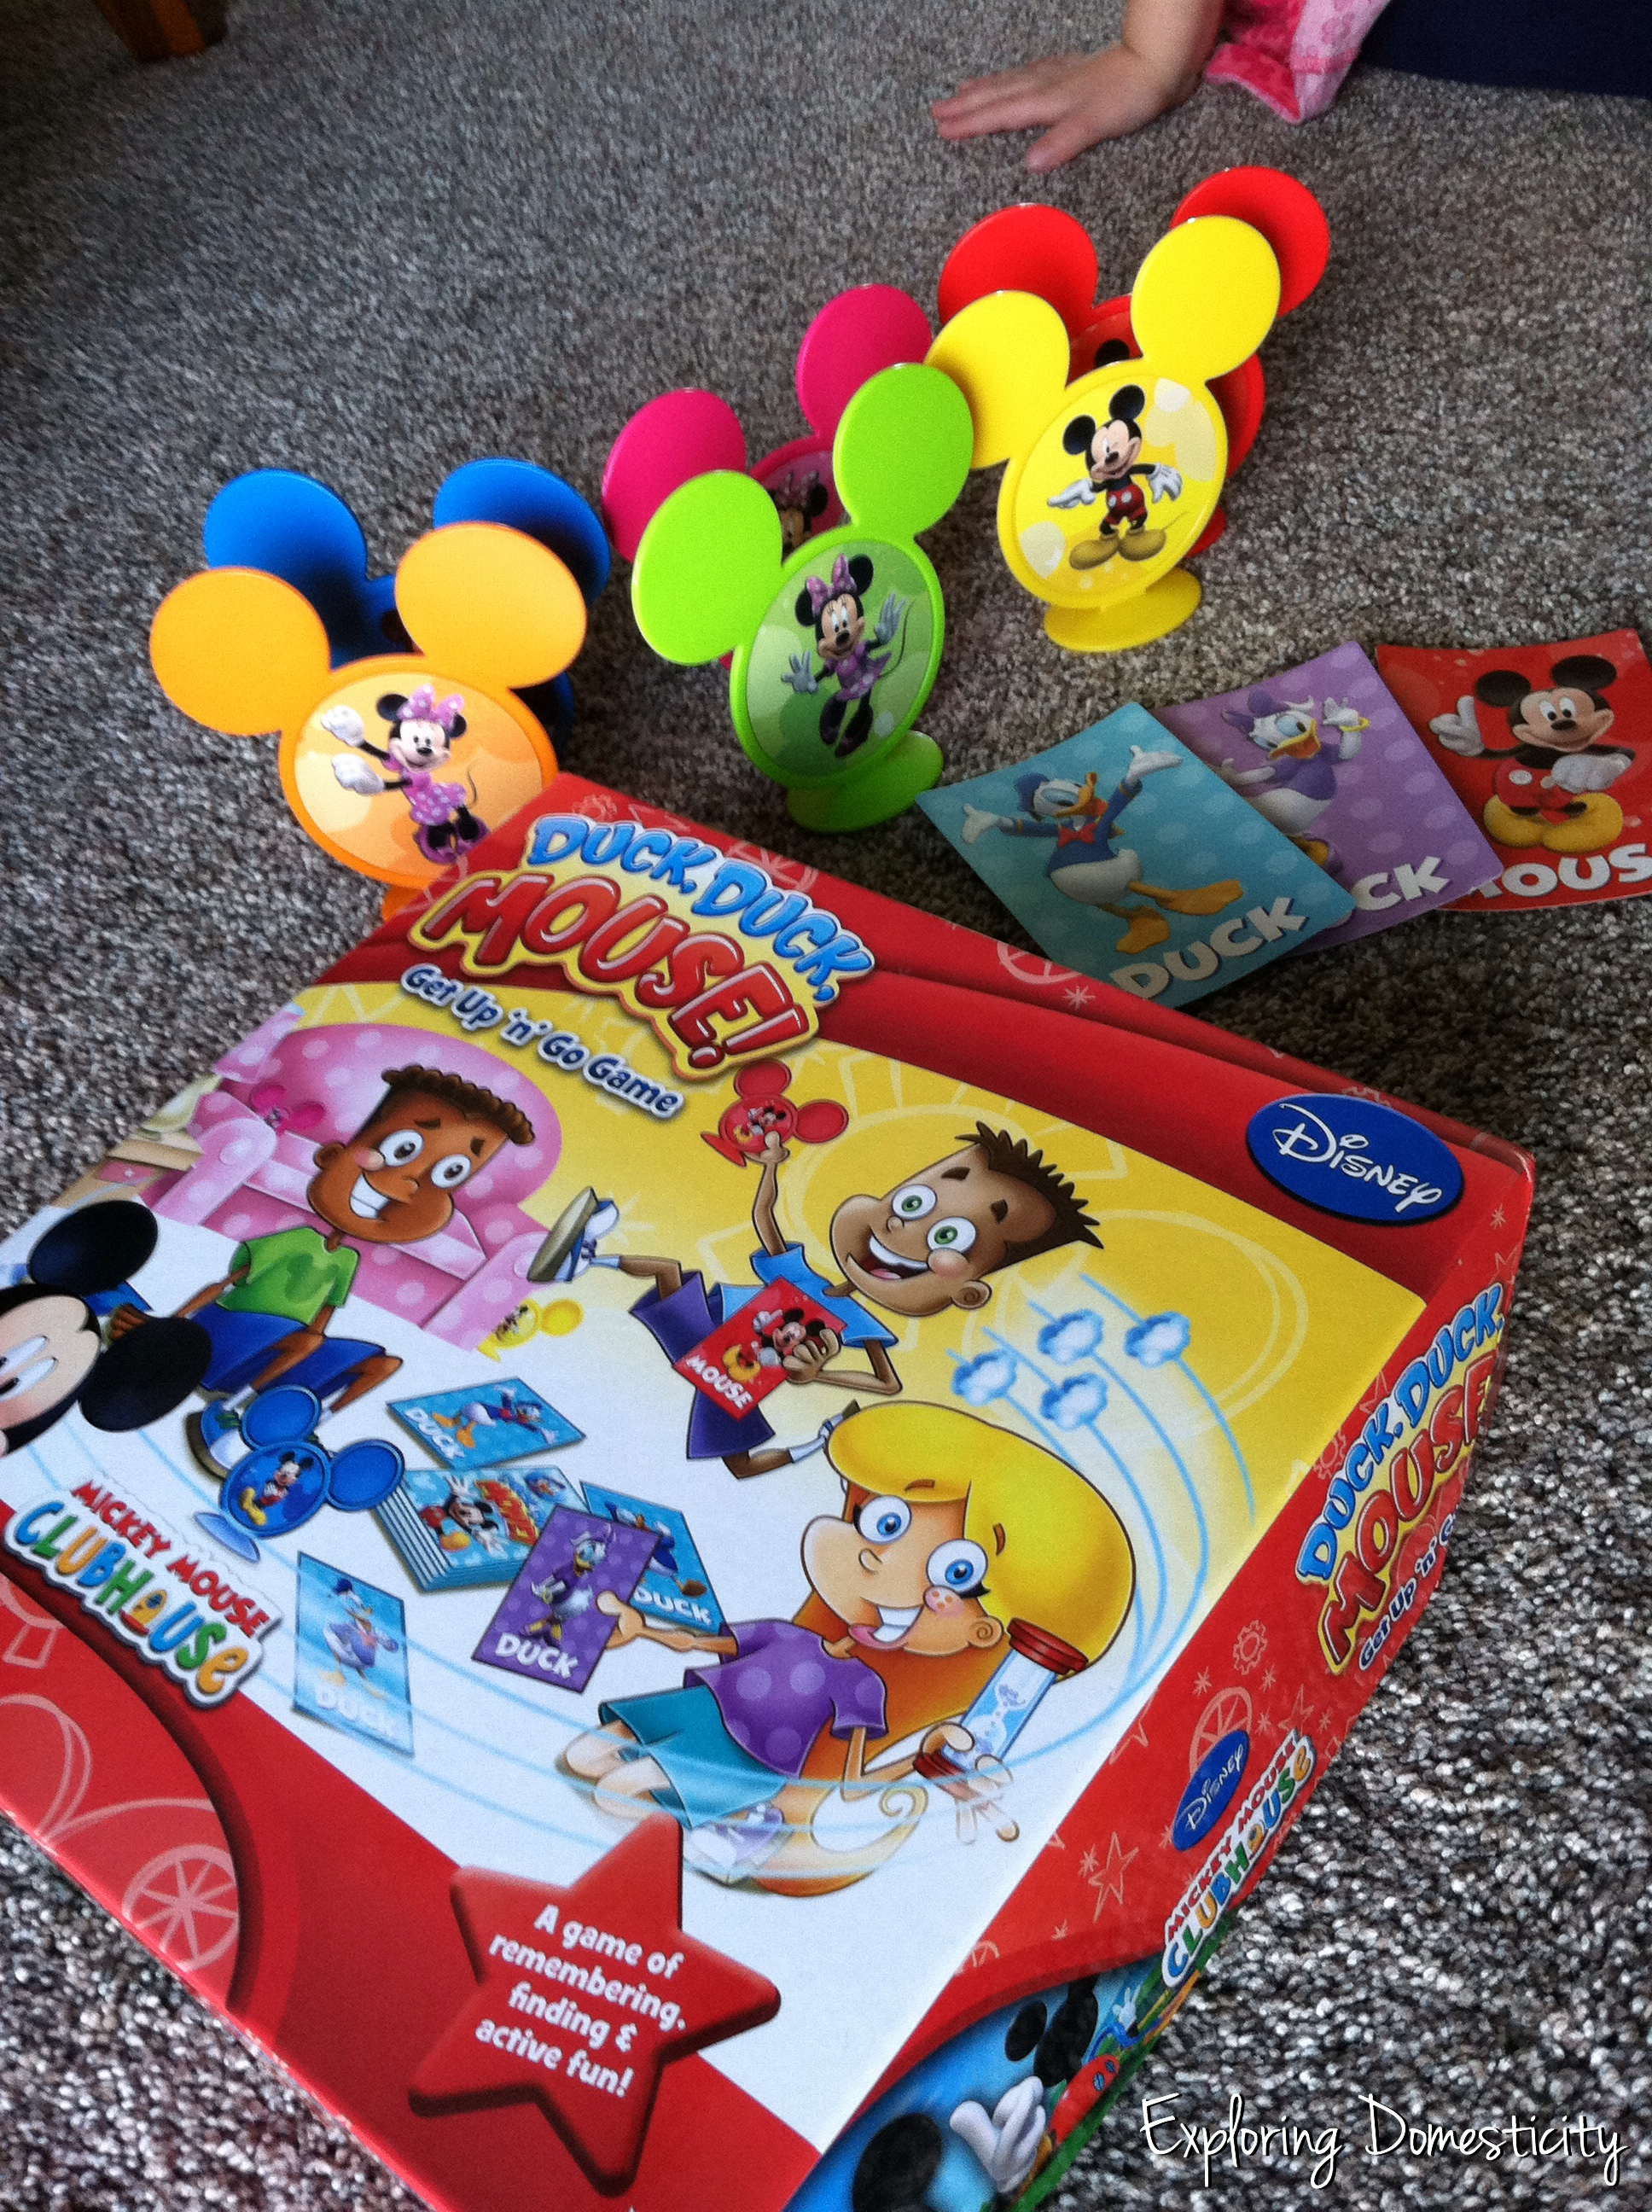 Duck duck mouse, and more ways to stay active with kids when stuck inside